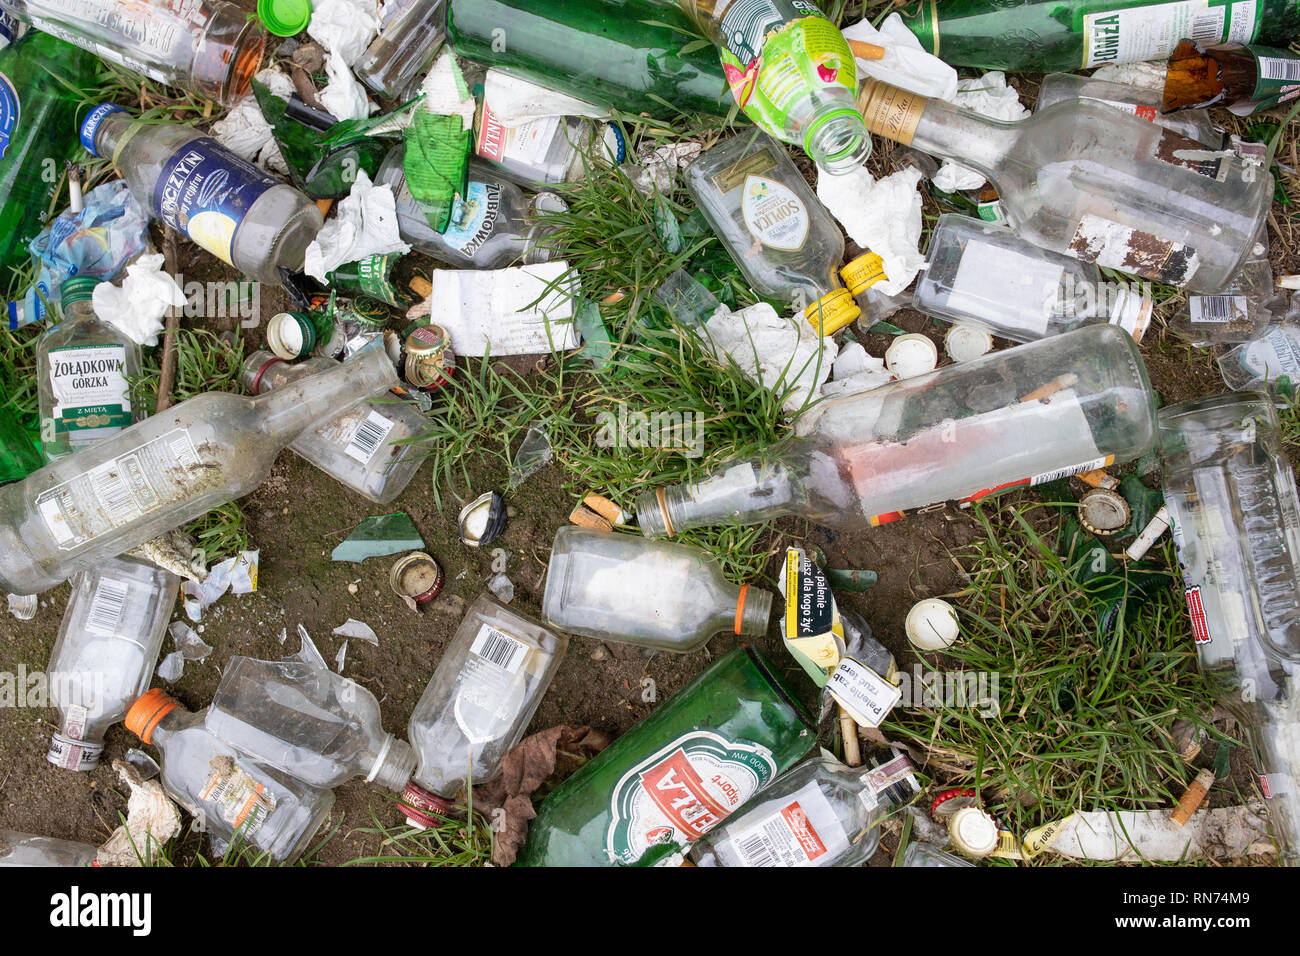 Garbage, mess, rubbish, bottles on the ground. Alcoholism in the little city. Gniezno, Poland - Stock Image